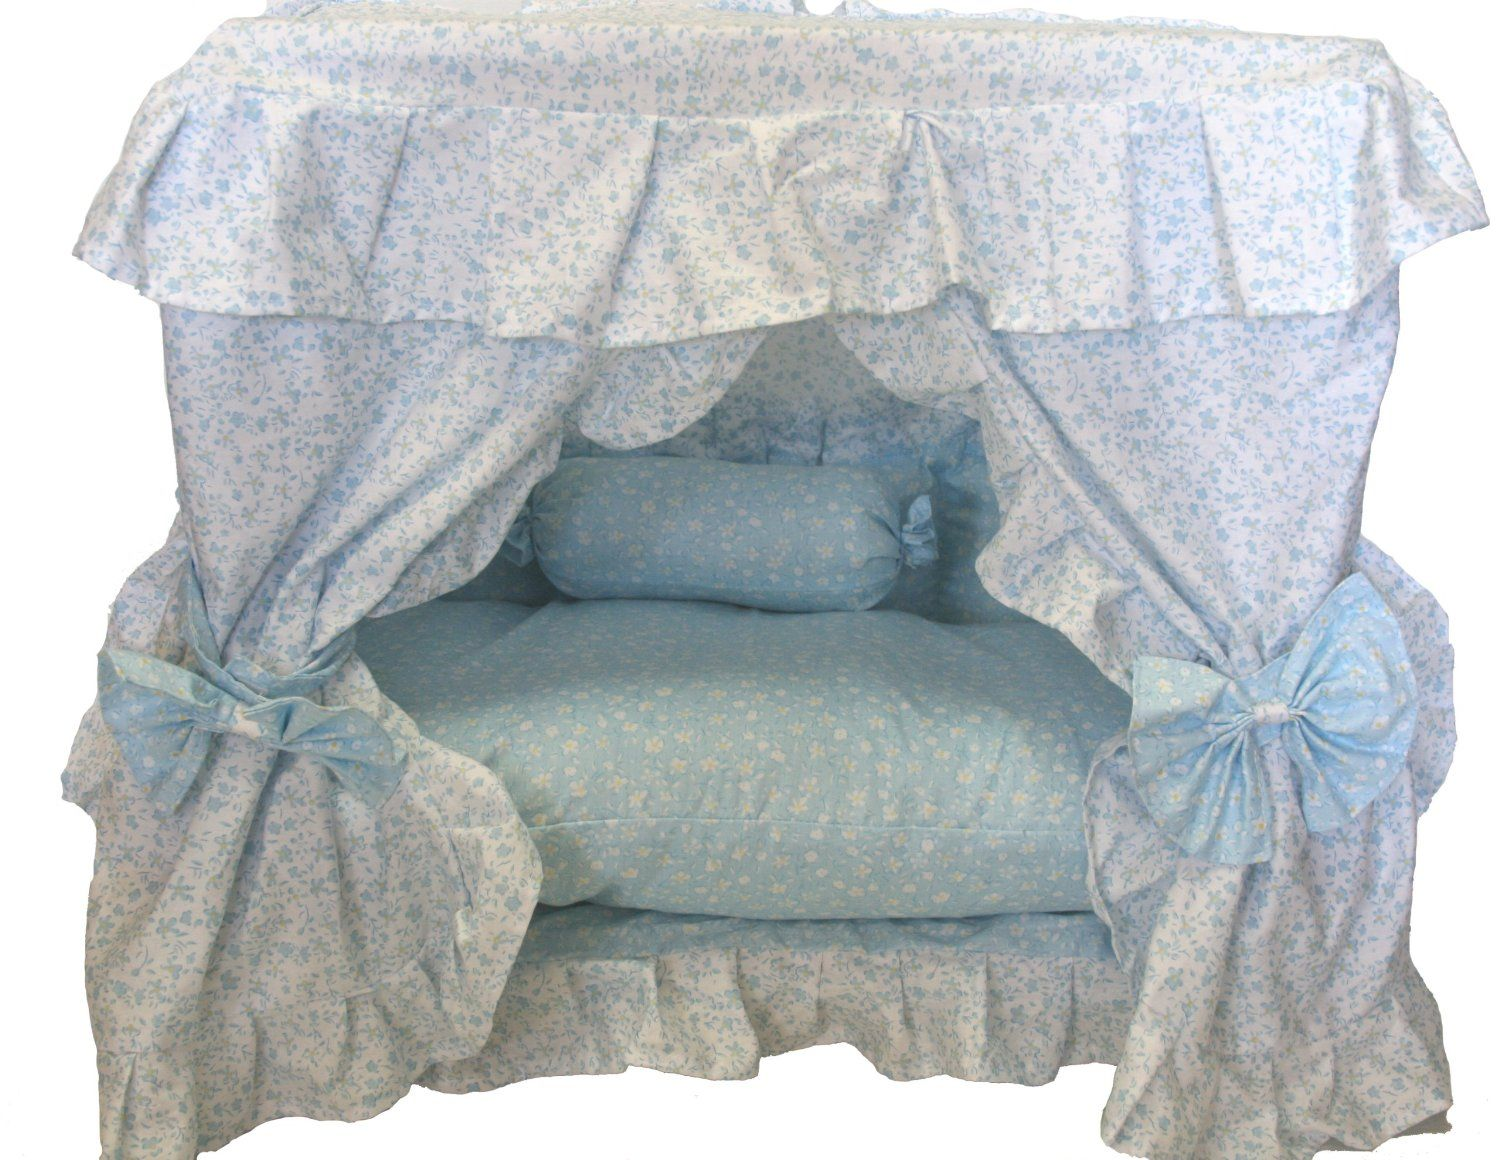 small dog beds | Bellau0027s Handmade Luxury Princess Dog Bed w/ Canopy CHECK PRICE  sc 1 st  Pinterest & small dog beds | Bellau0027s Handmade Luxury Princess Dog Bed w ...